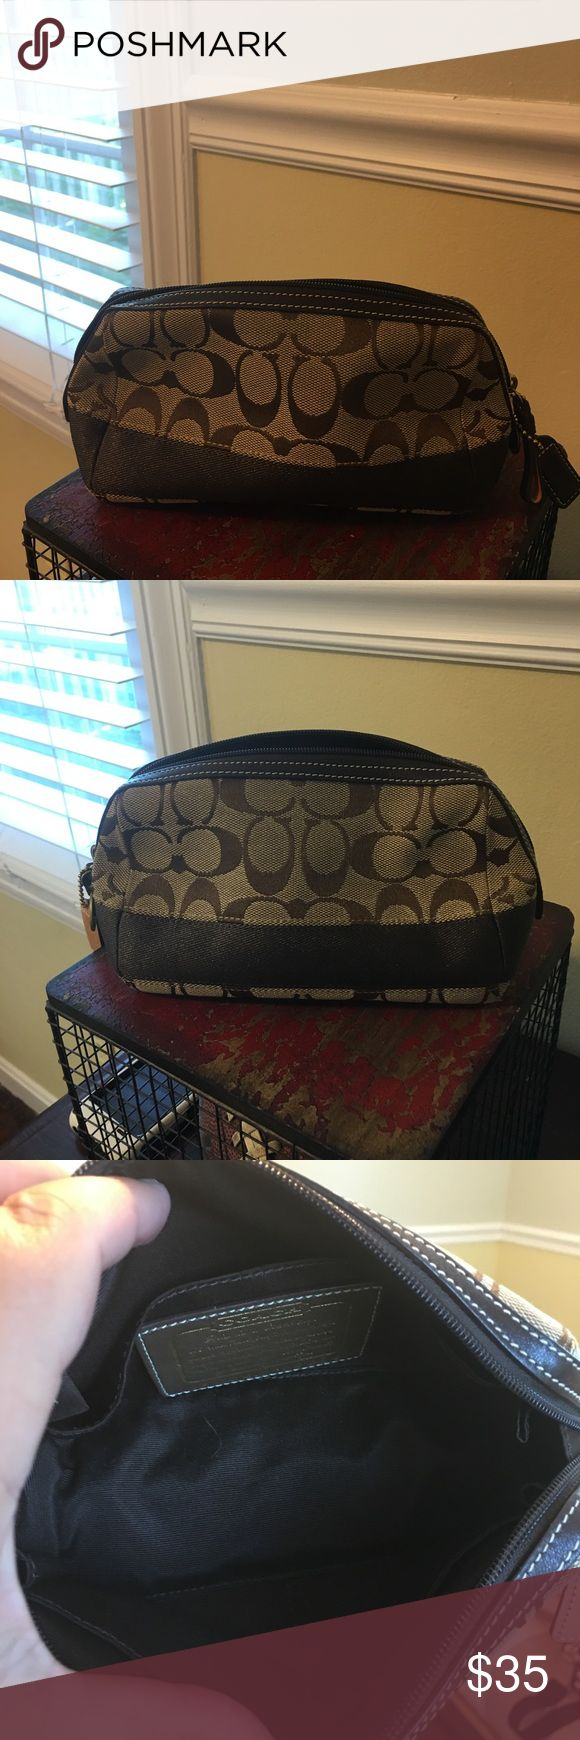 Coach Travel Bag Brown and Tan Coach accessory bag. Perfect for make up or any accessories!! Great travel bag. Coach Bags Travel Bags